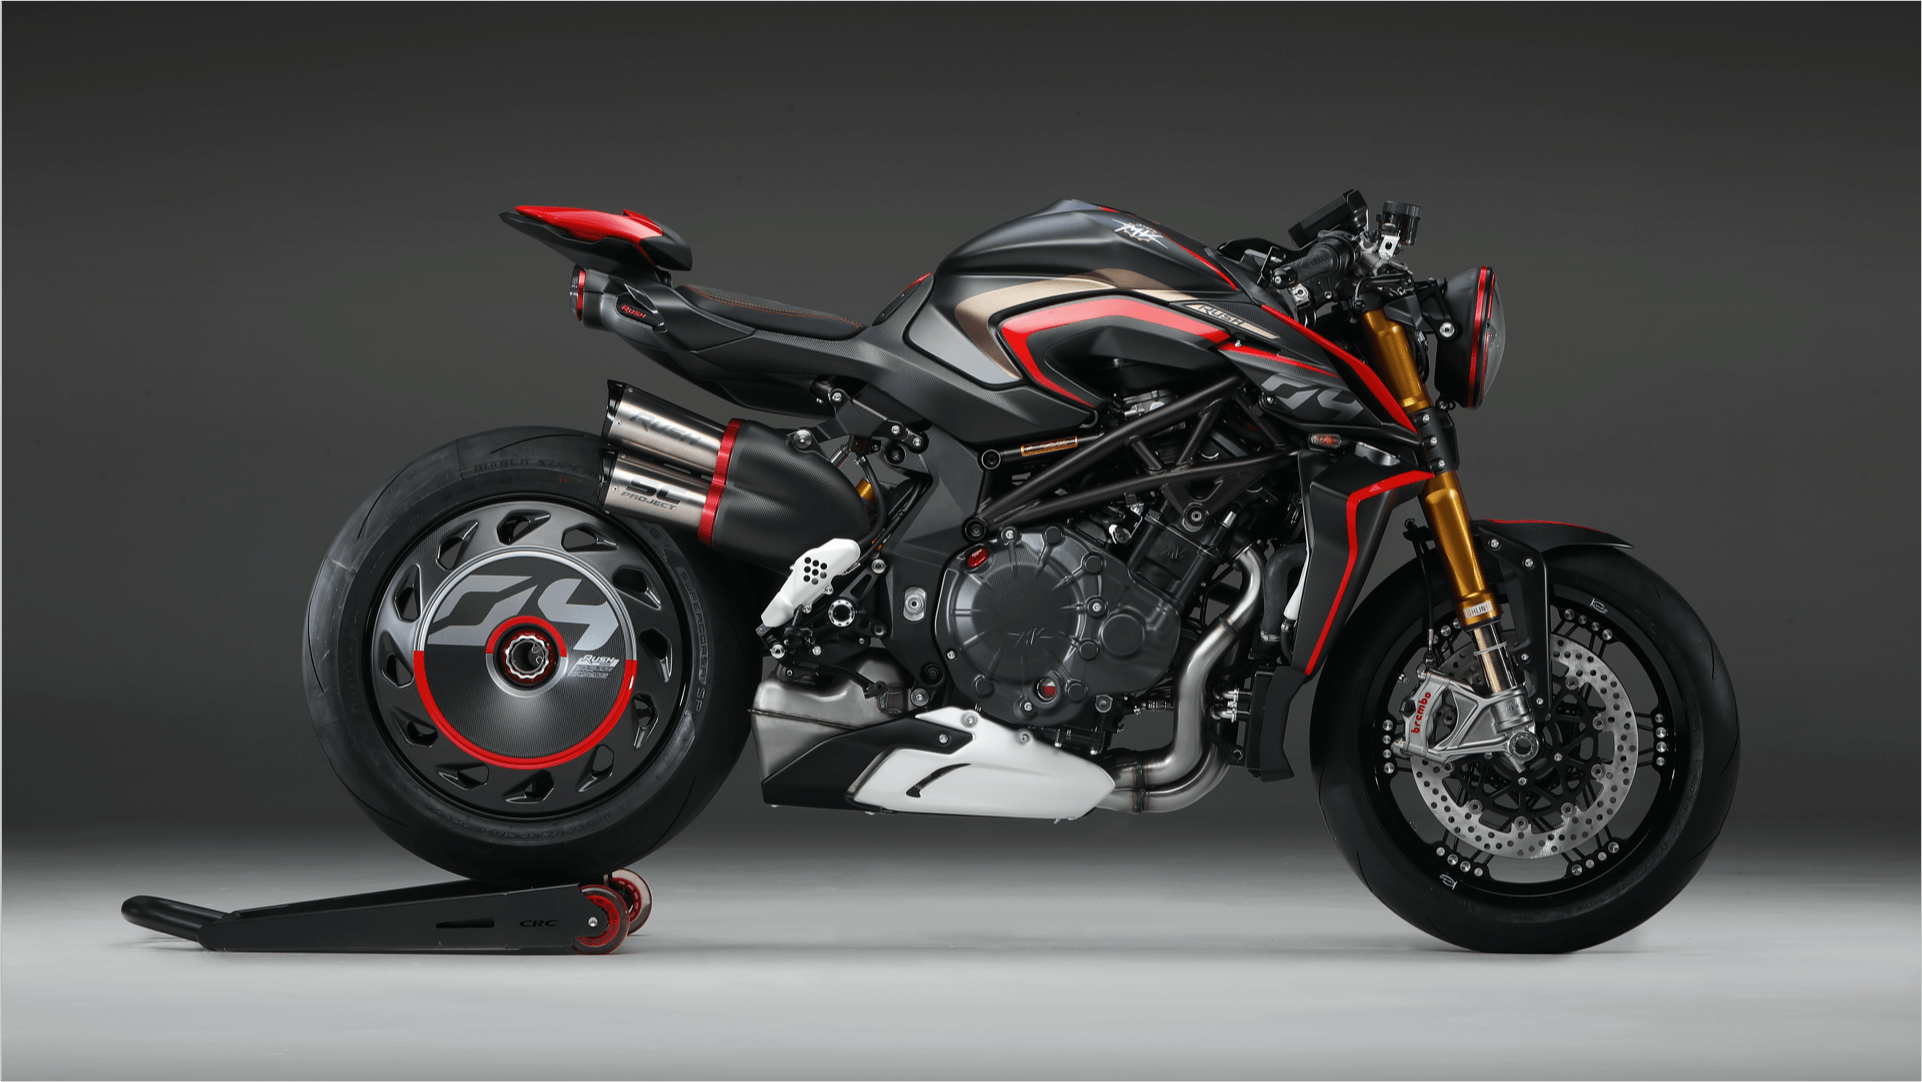 2020 MV Agusta Rush 1000 Side View 2